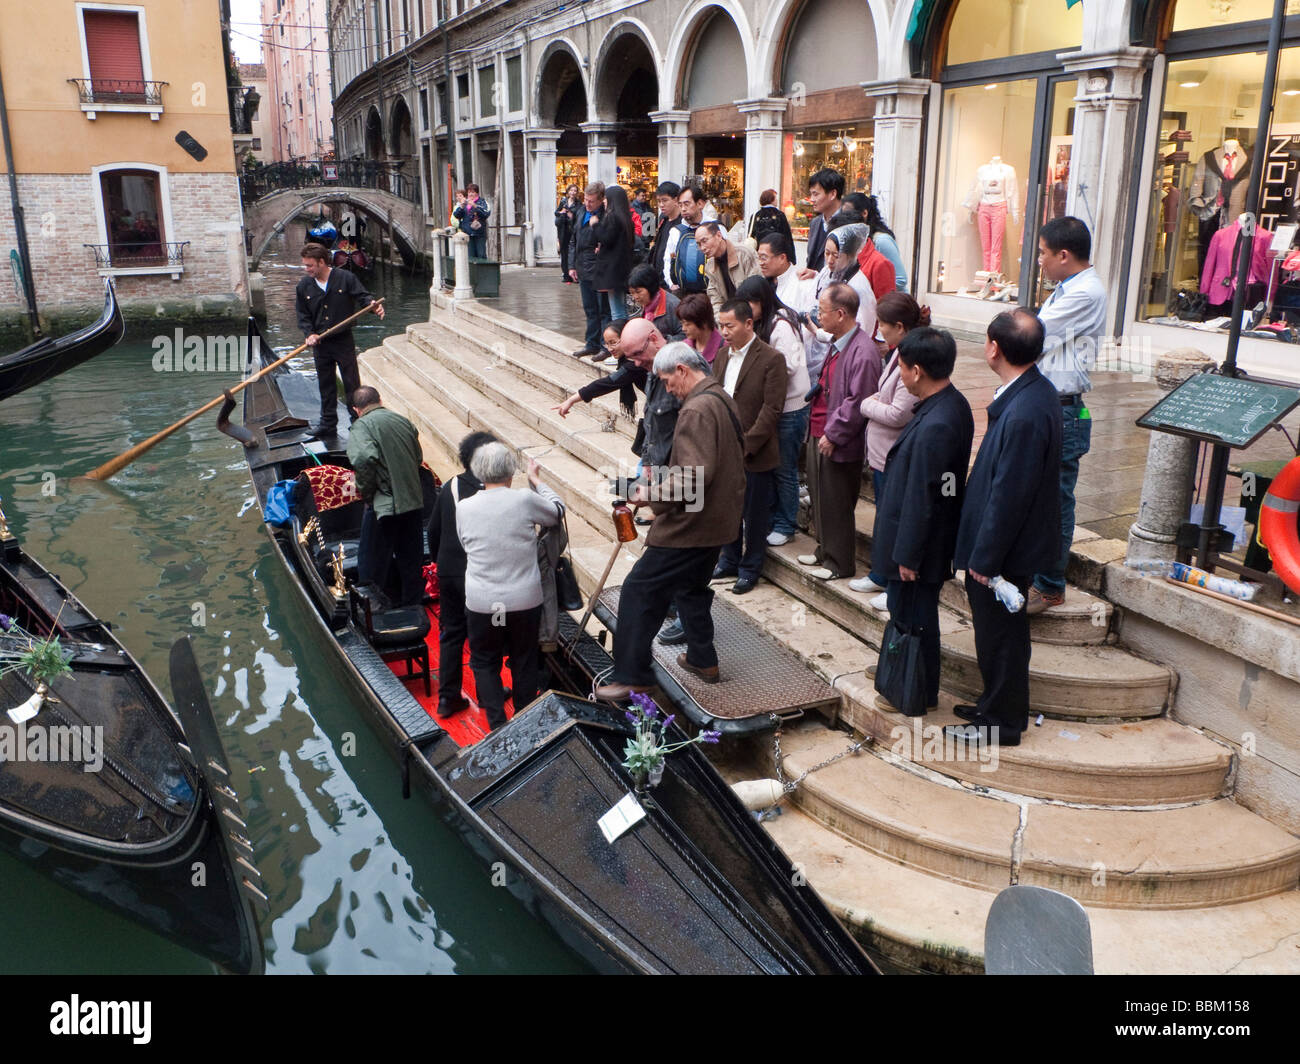 Group of tourists boarding a gondola at Bacino Orseolo San Marco Venice Italy - Stock Image